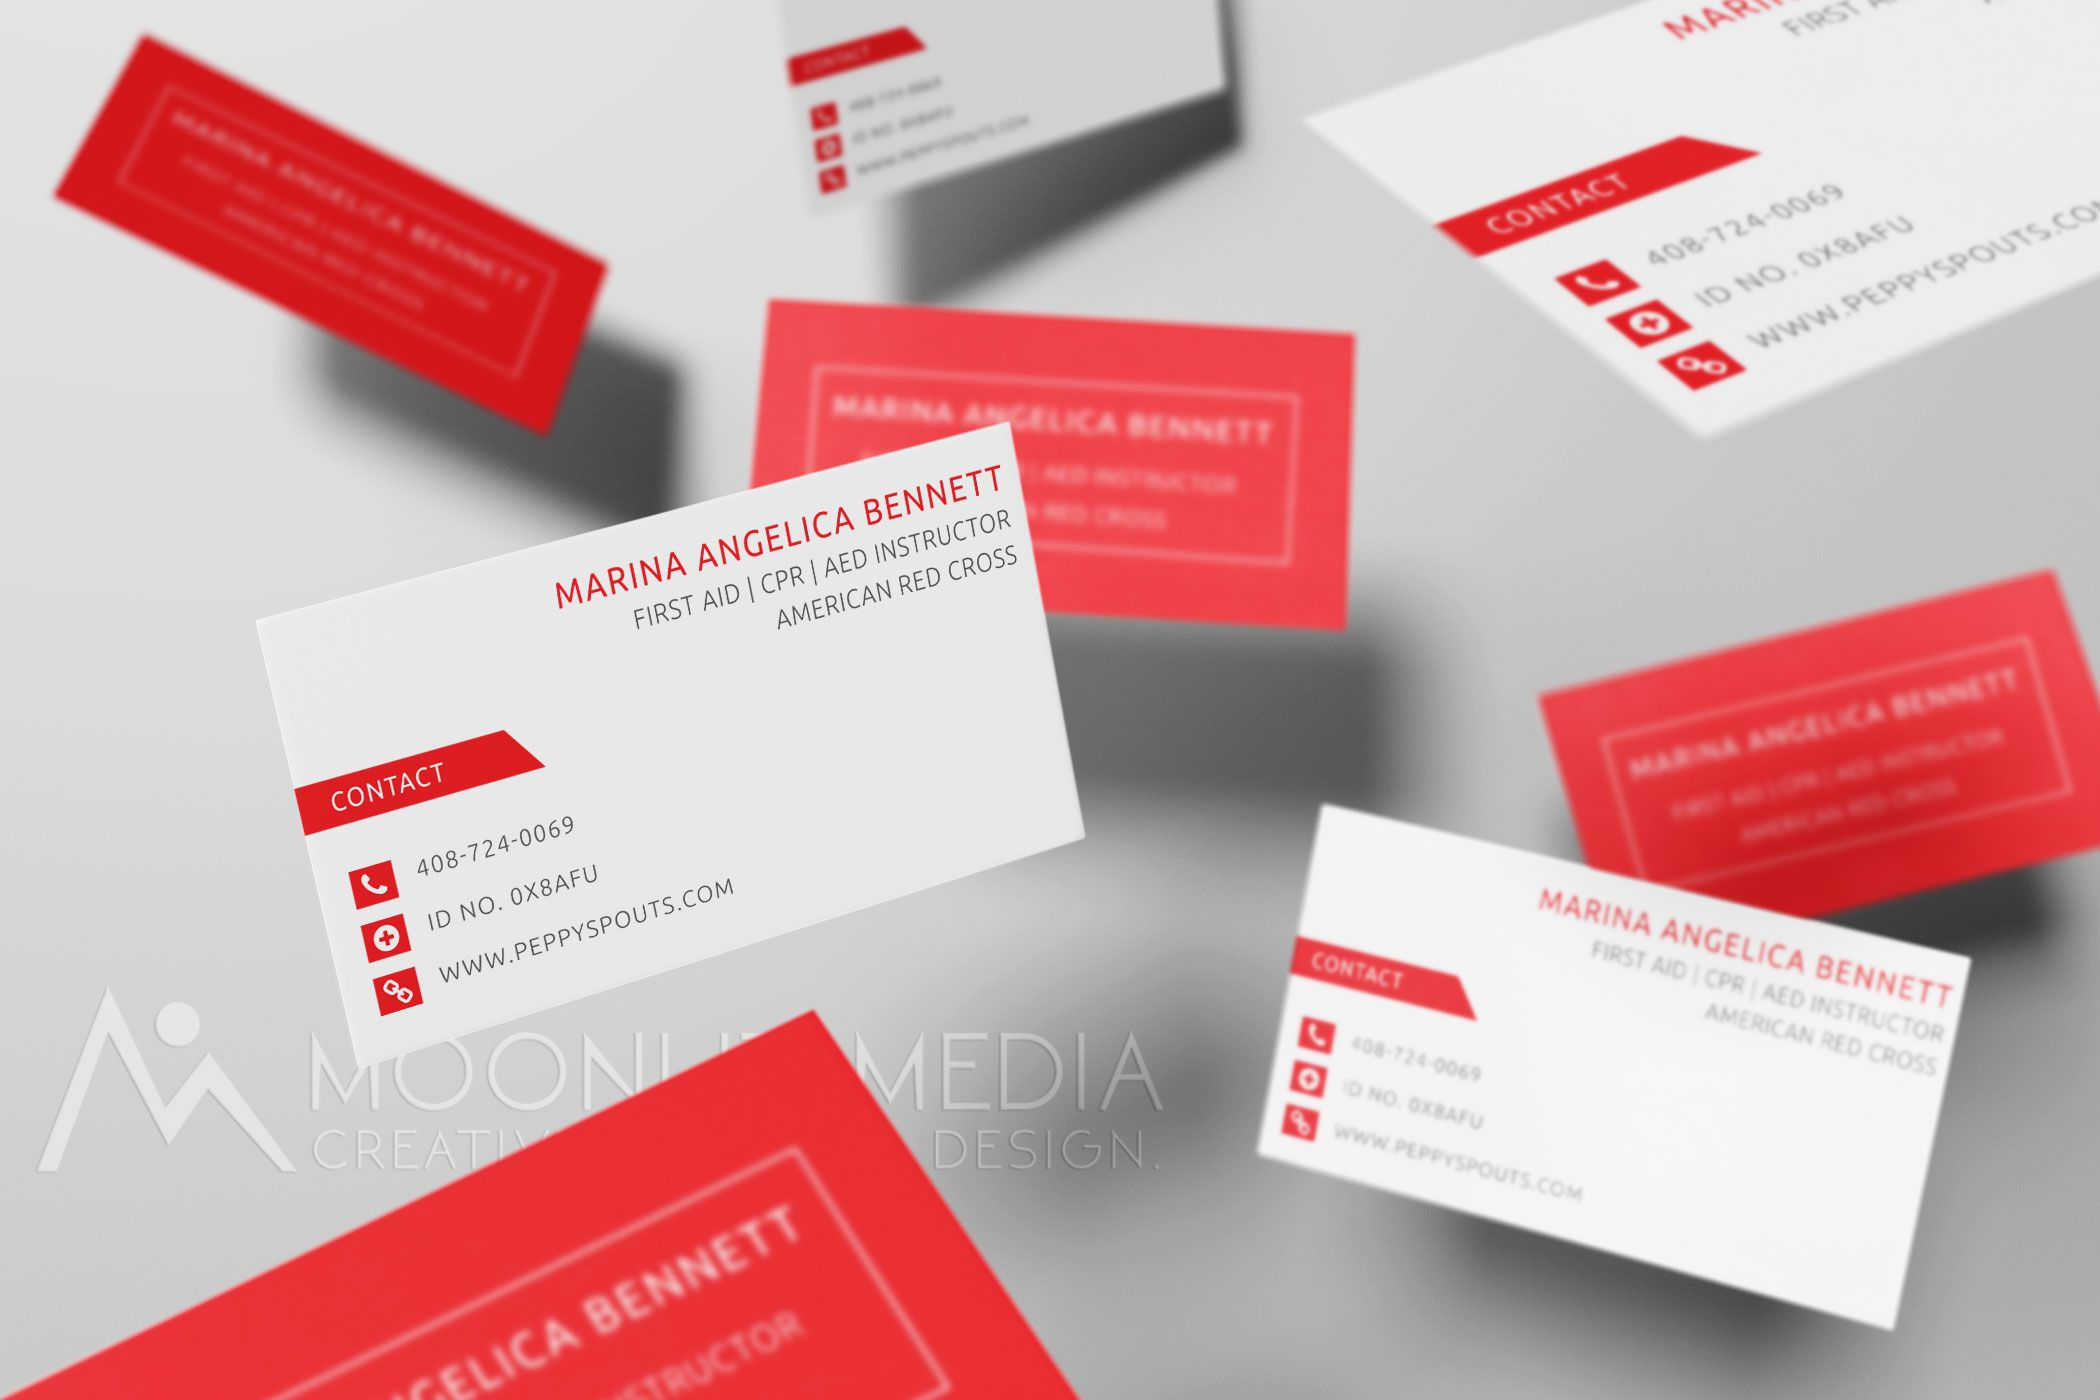 Silk business cards for an redcross certified cpr instructor silk business cards for an redcross certified cpr instructor moonlitmedia 1betcityfo Image collections